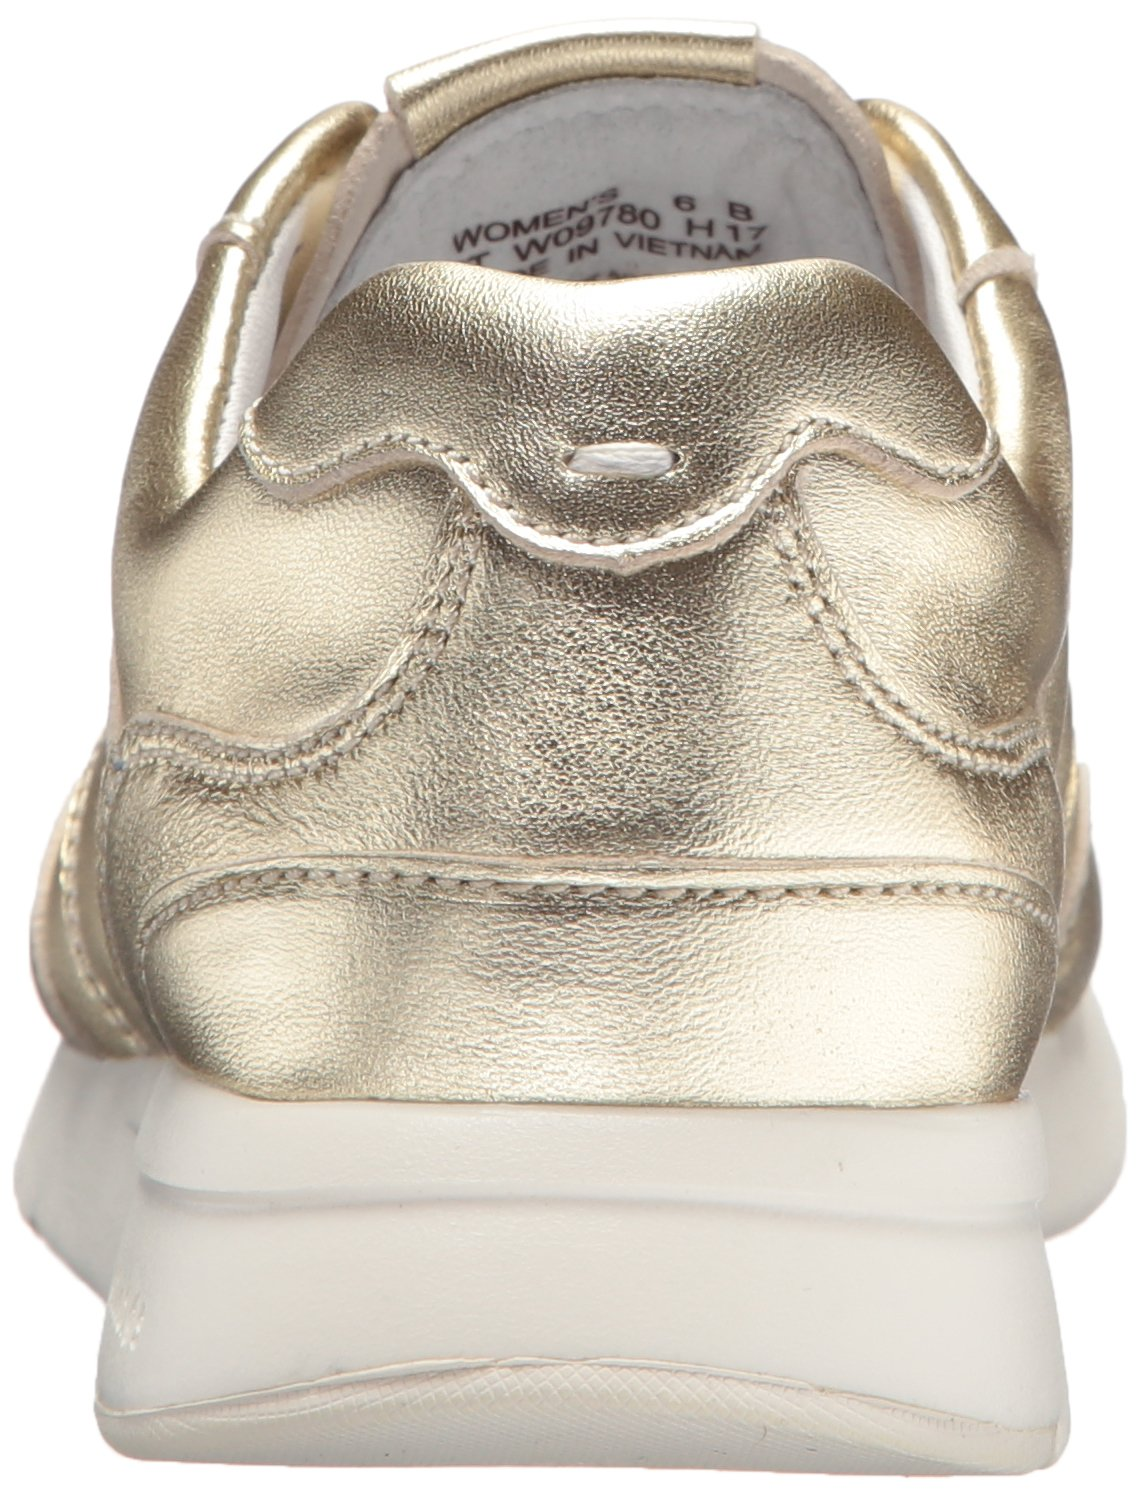 Cole Haan Women's Grandpro US|Metallic Runner B06ZYW5X2Q 6 B(M) US|Metallic Grandpro Soft Gold b6f5b3